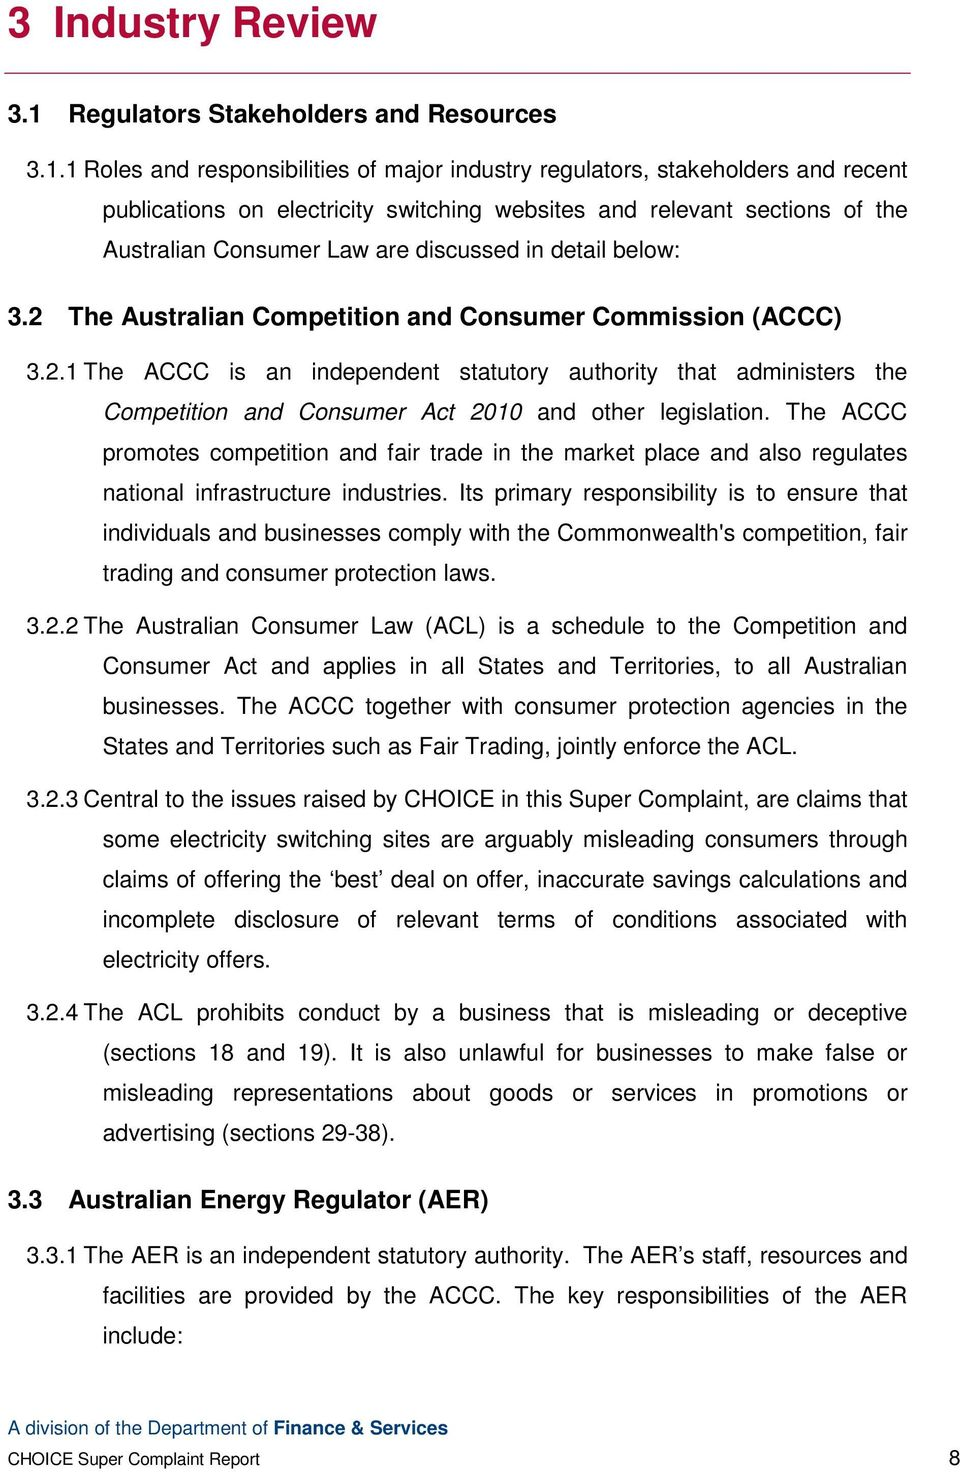 1 Roles and responsibilities of major industry regulators, stakeholders and recent publications on electricity switching websites and relevant sections of the Australian Consumer Law are discussed in